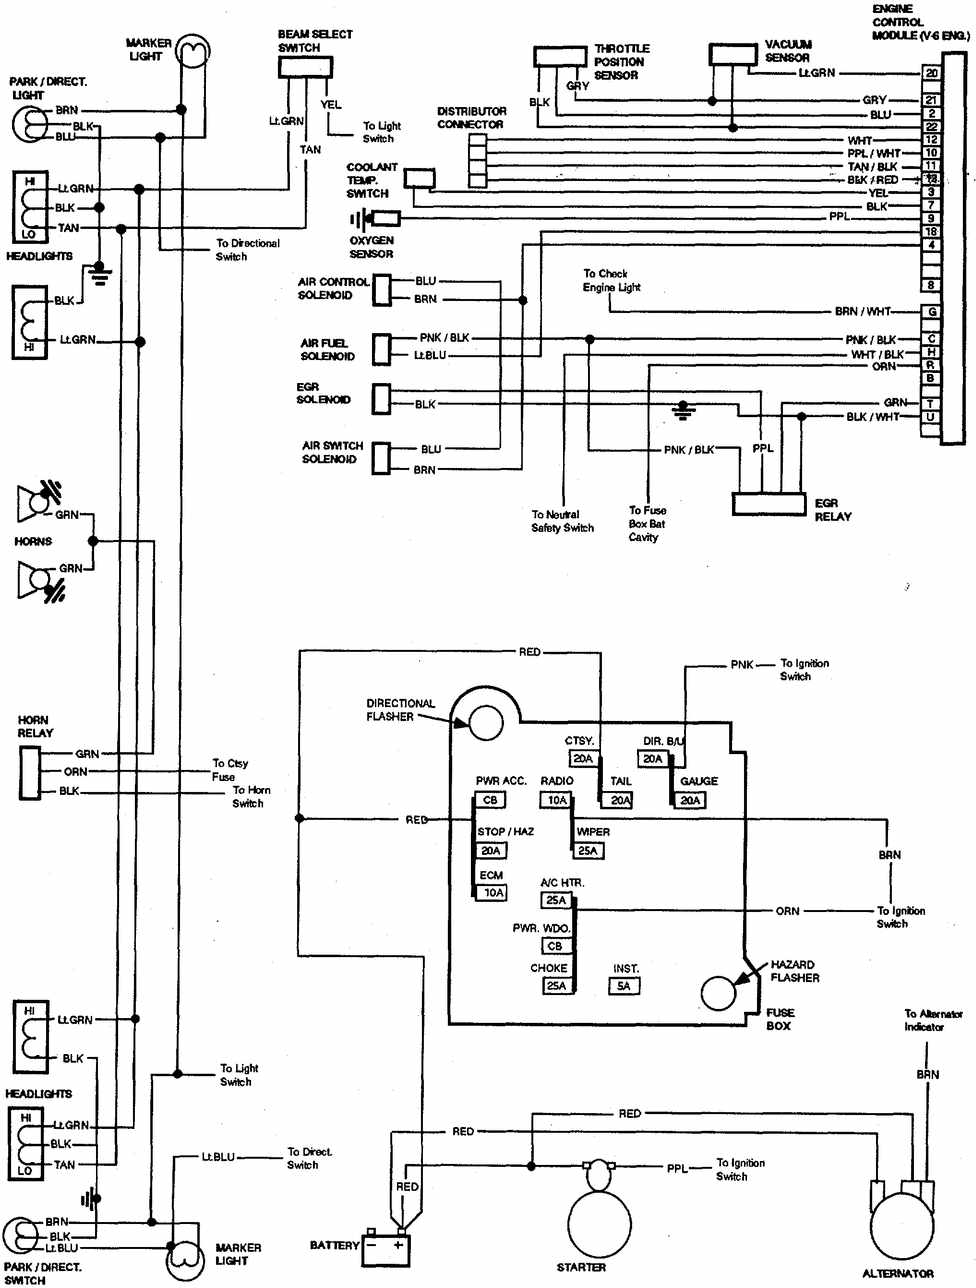 1982 g30 van wiring diagram